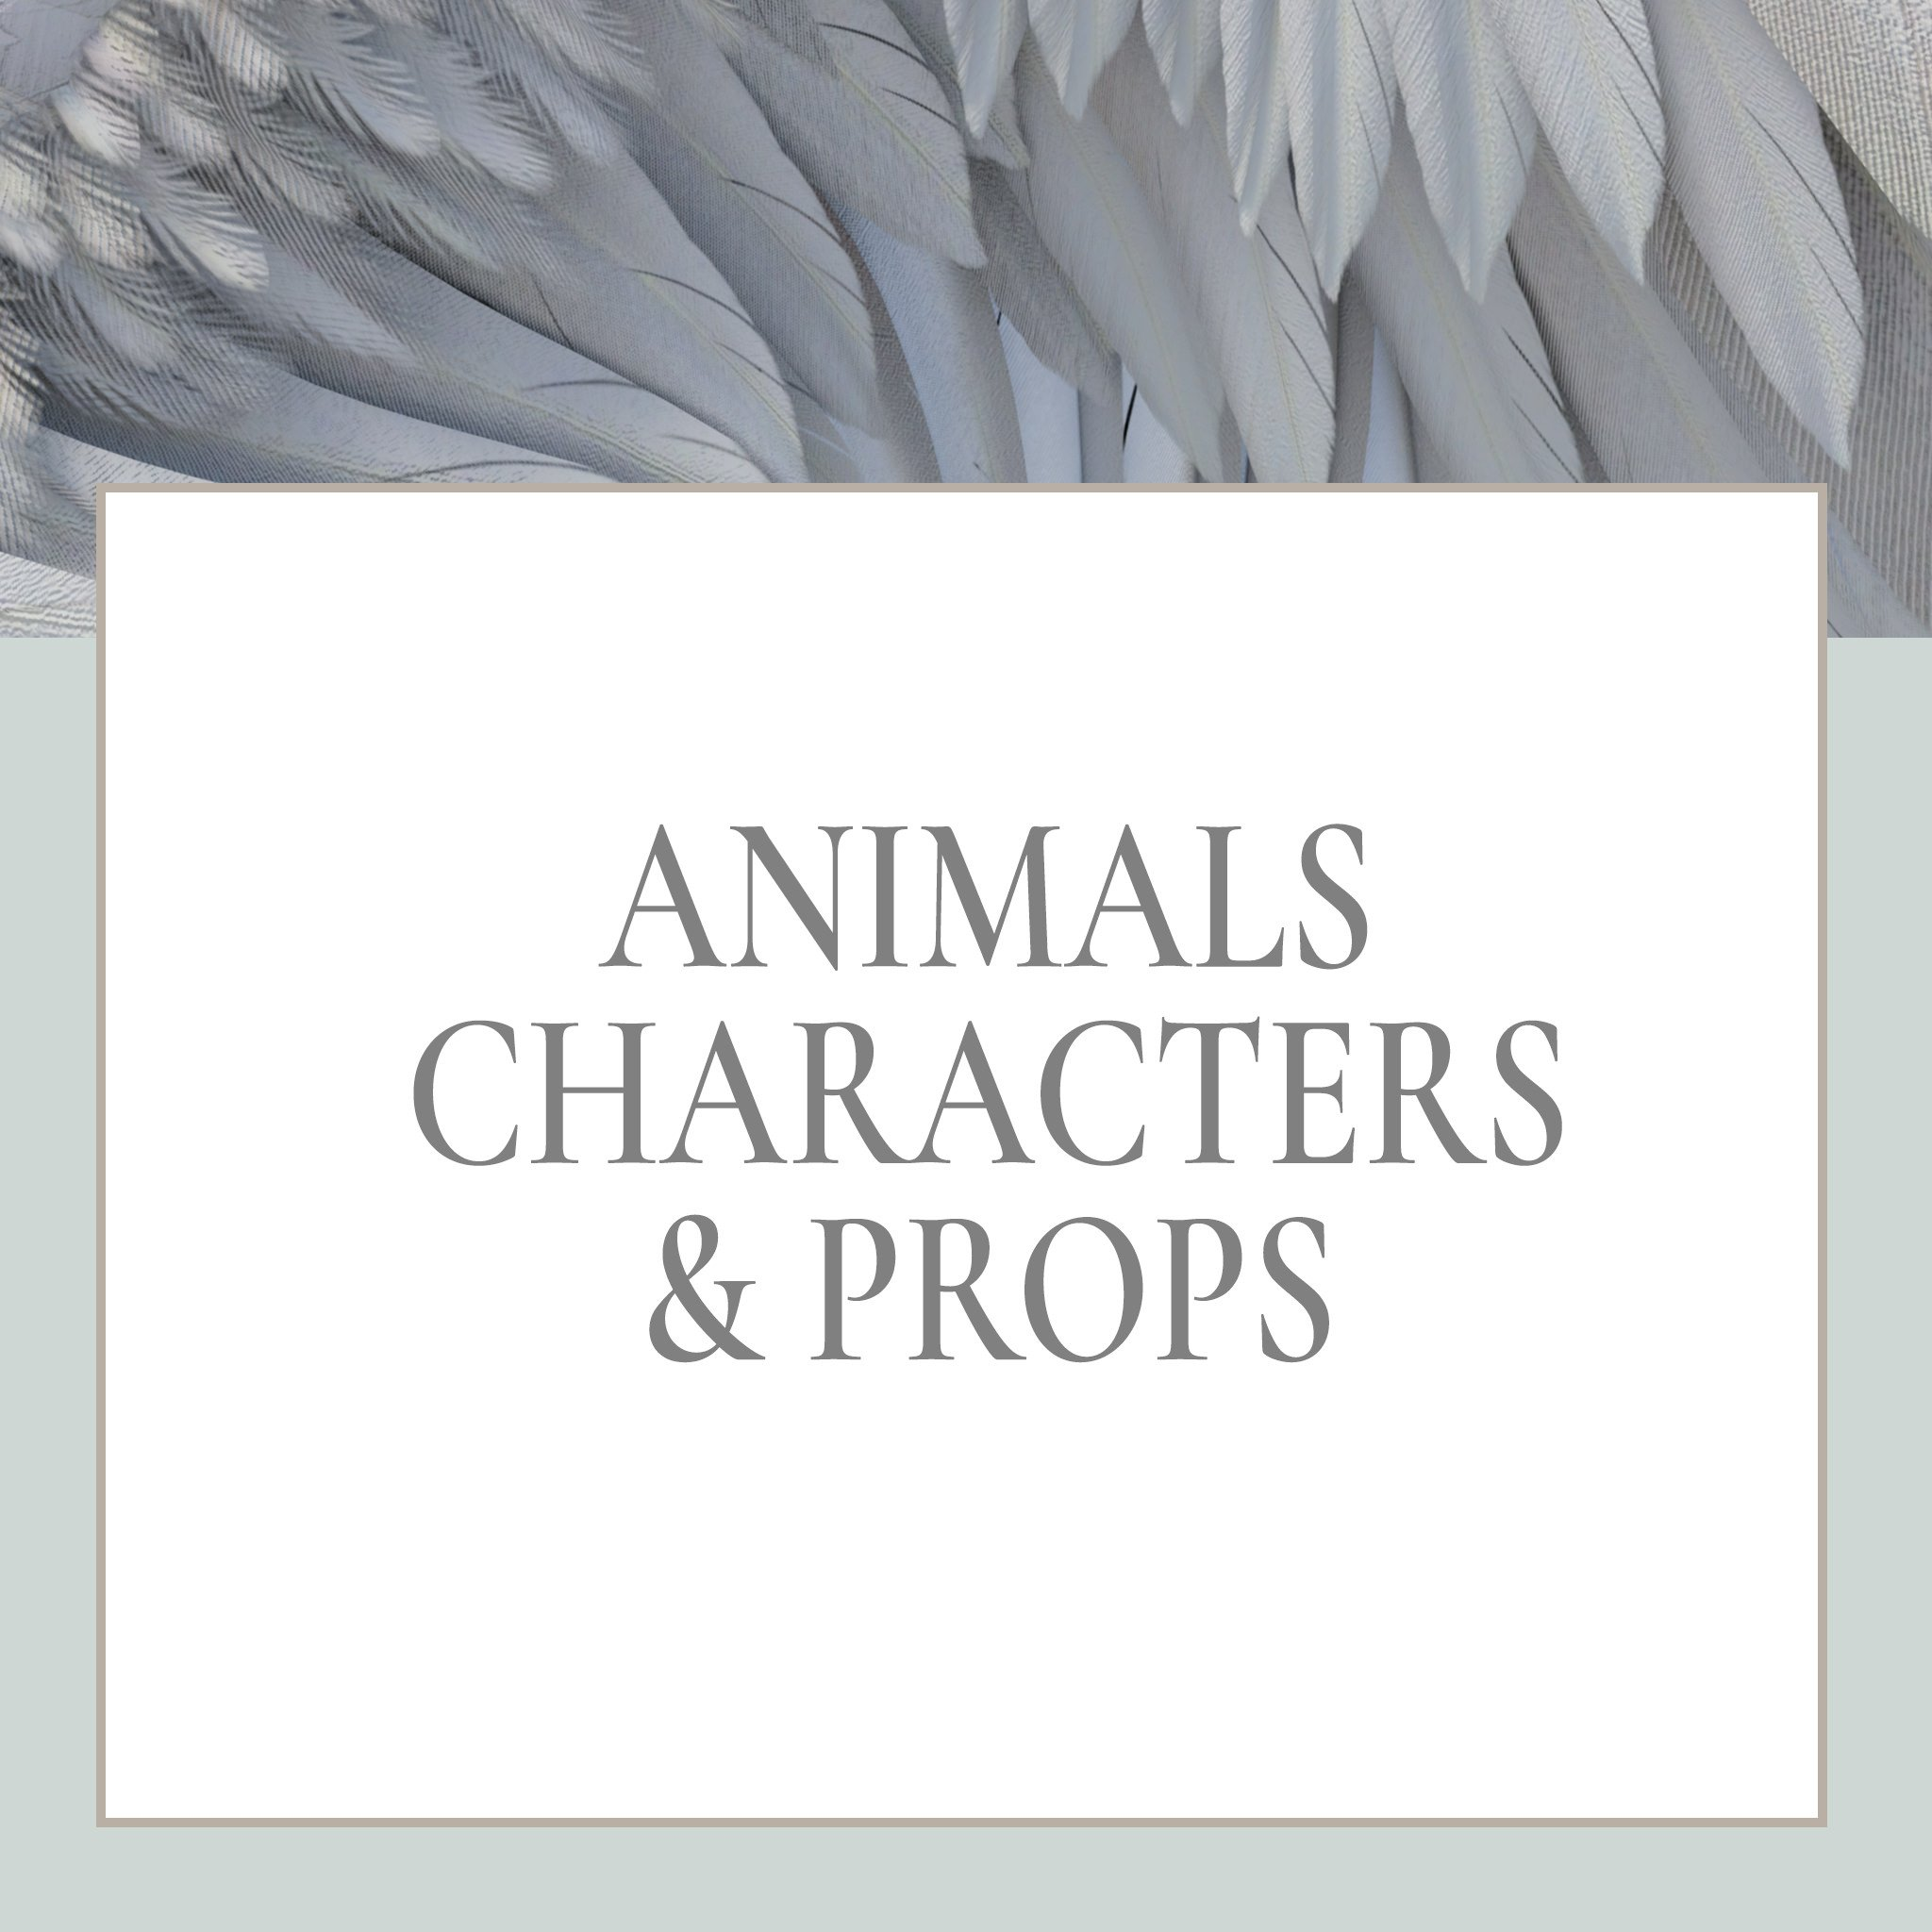 click here to shop for digital animal, character and prop overlays from the alana lee photography store